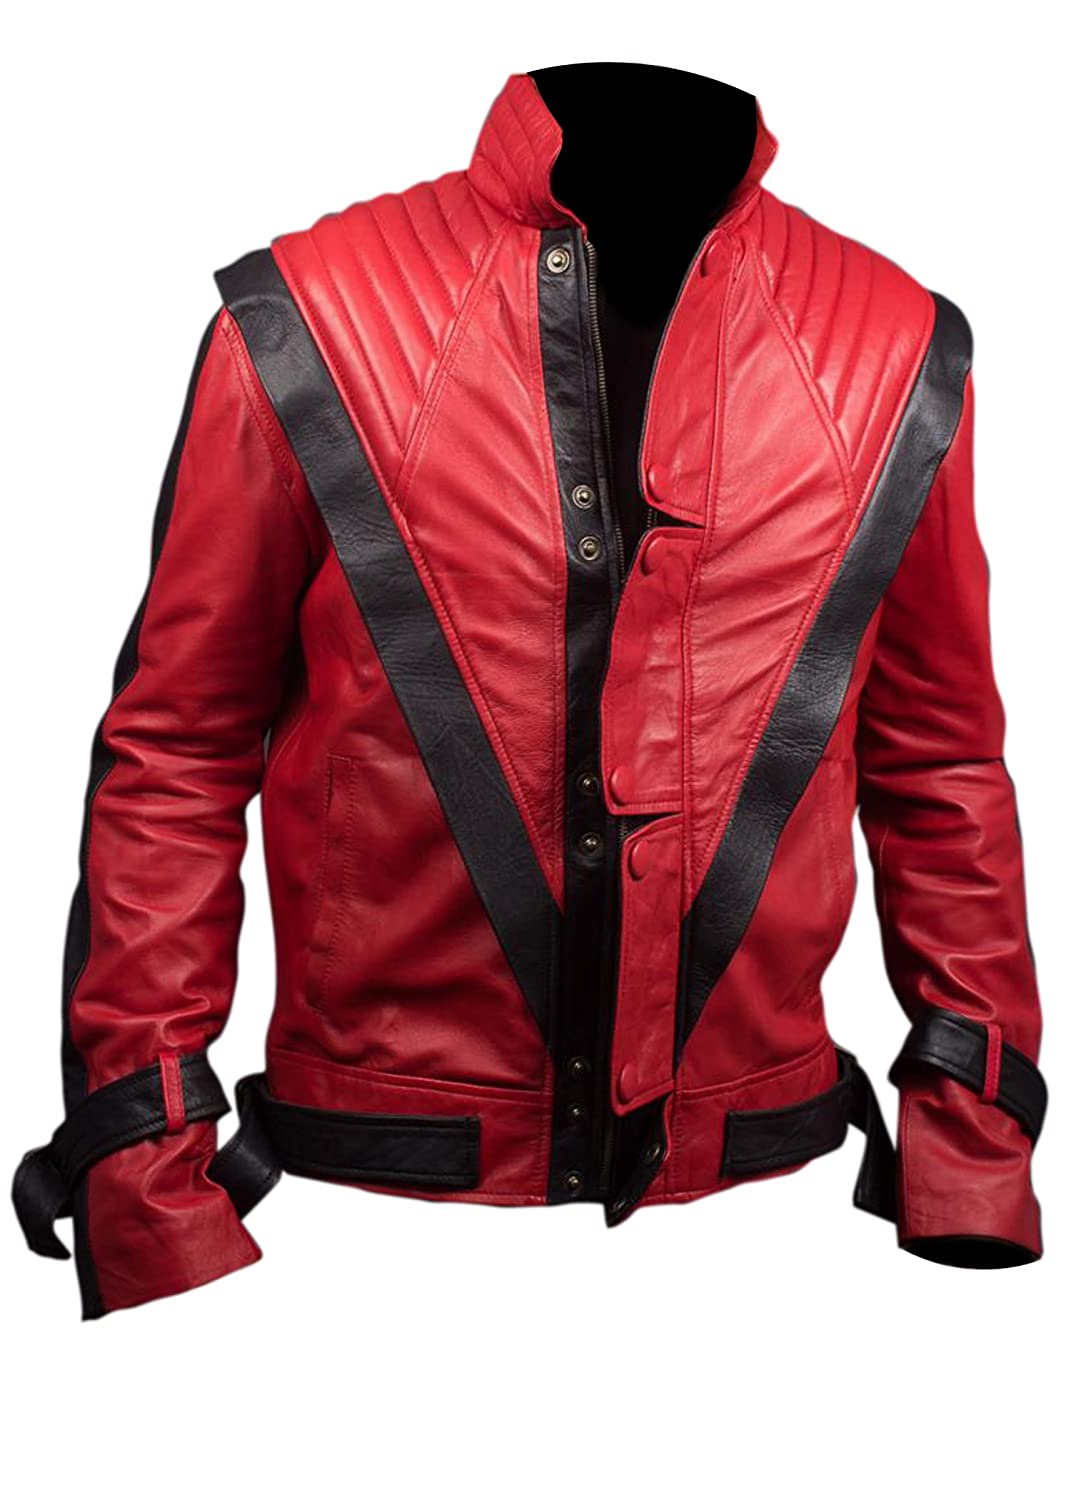 Michael Jackson Thriller Style Leather Jacket Red Colour mjthriller-p